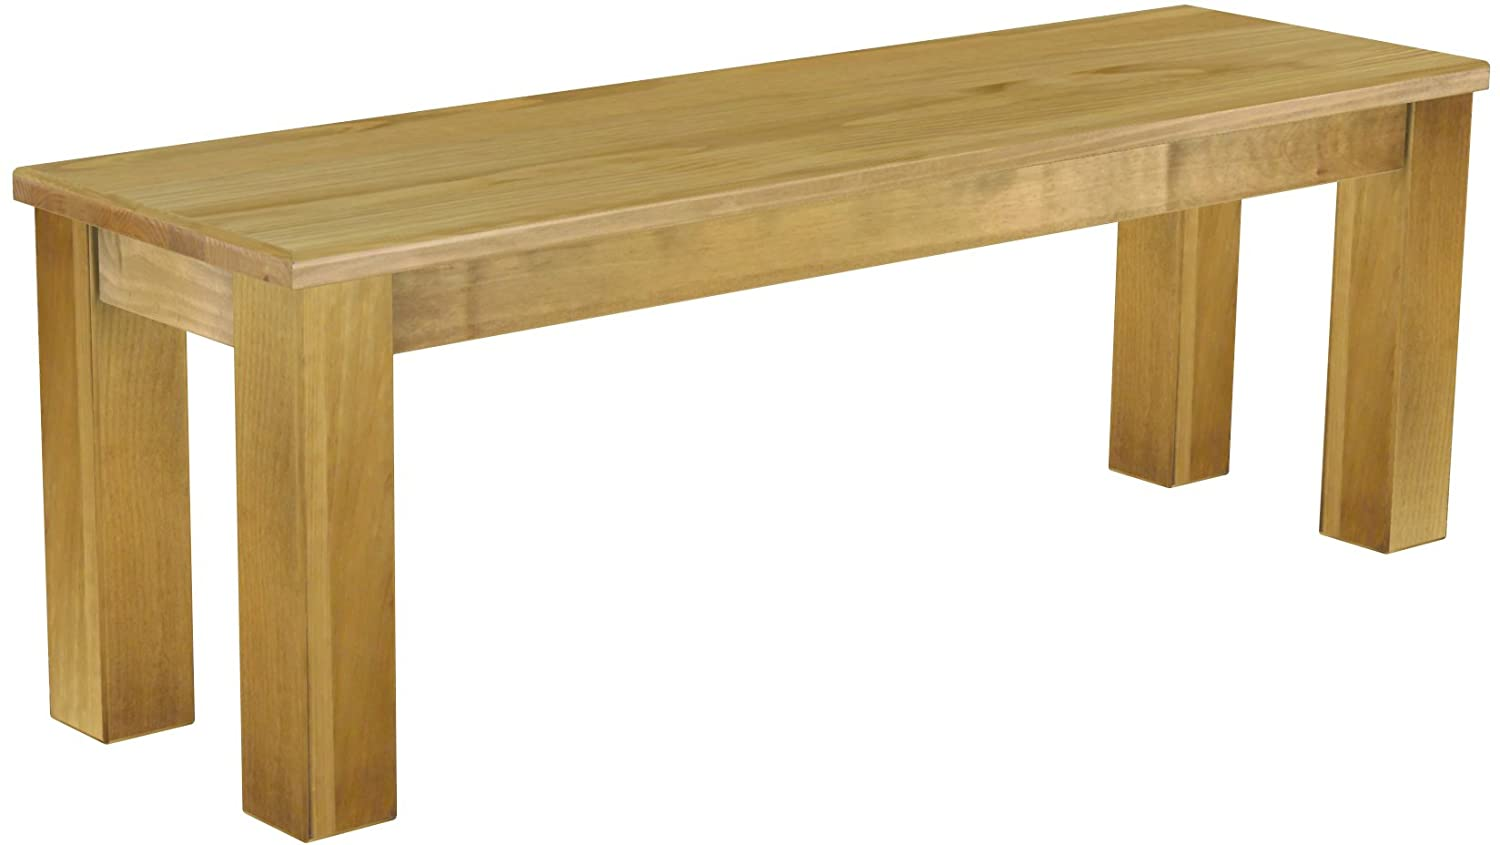 BrasilmÖbel Bench Solid Pine 130 Cm Tonal Brasil - Oiled And Waxed